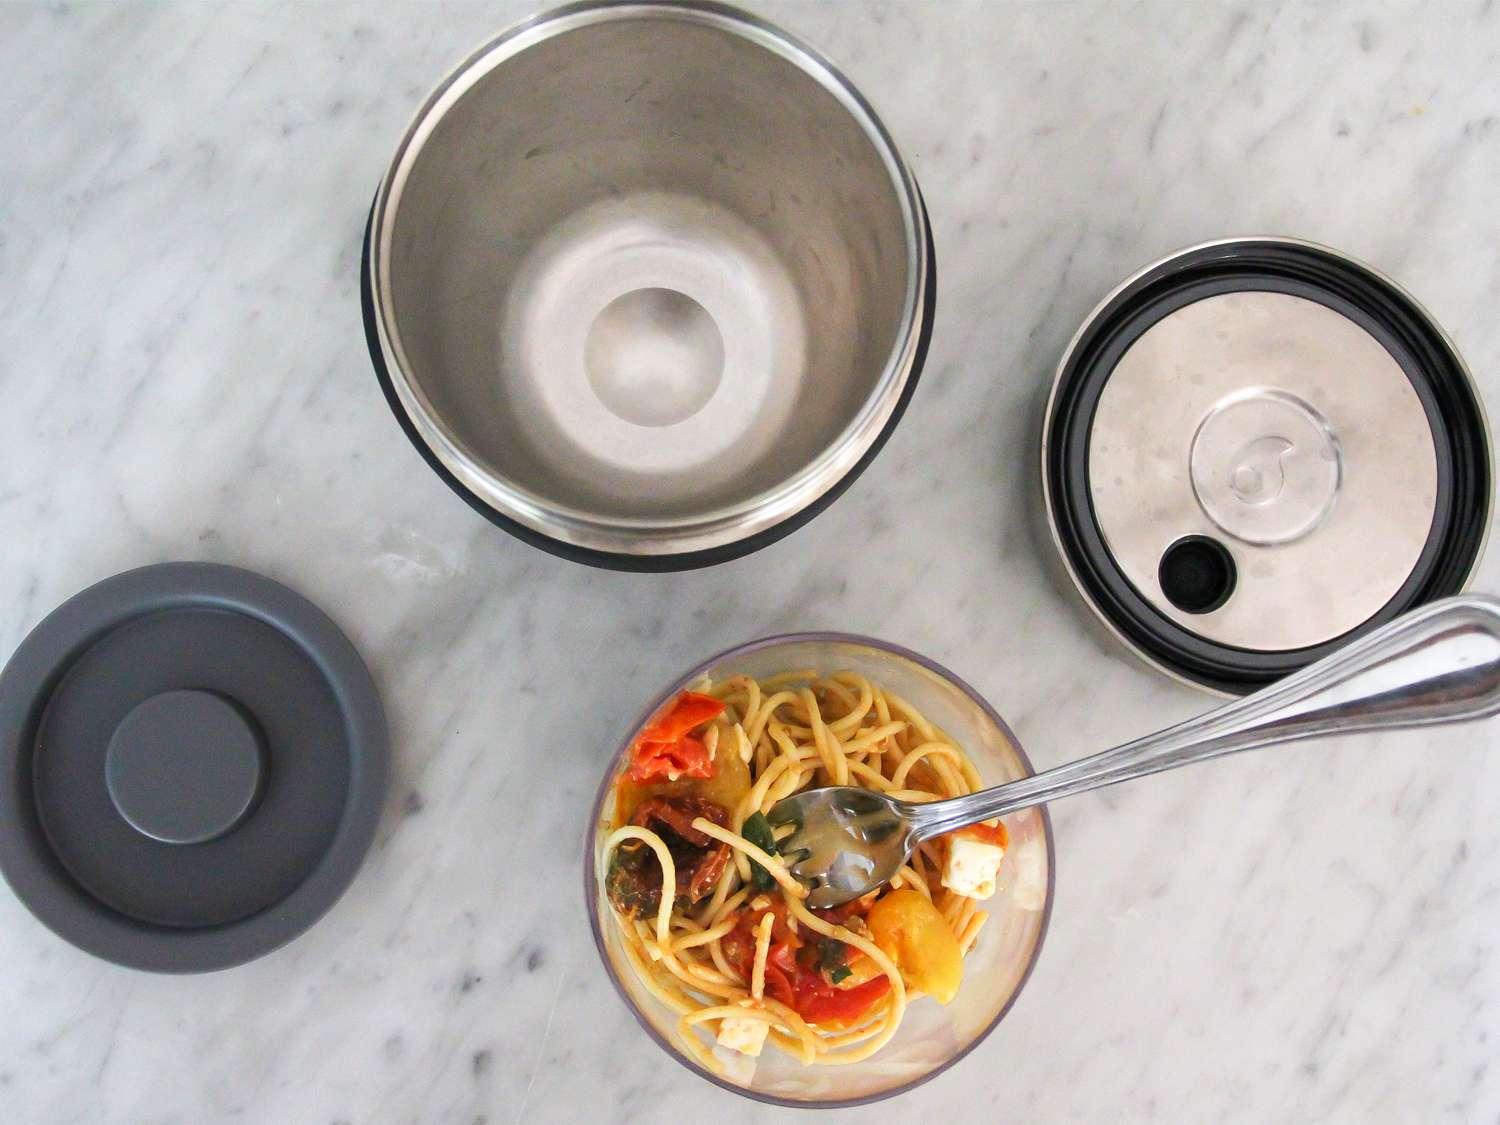 Food thermos with pasta